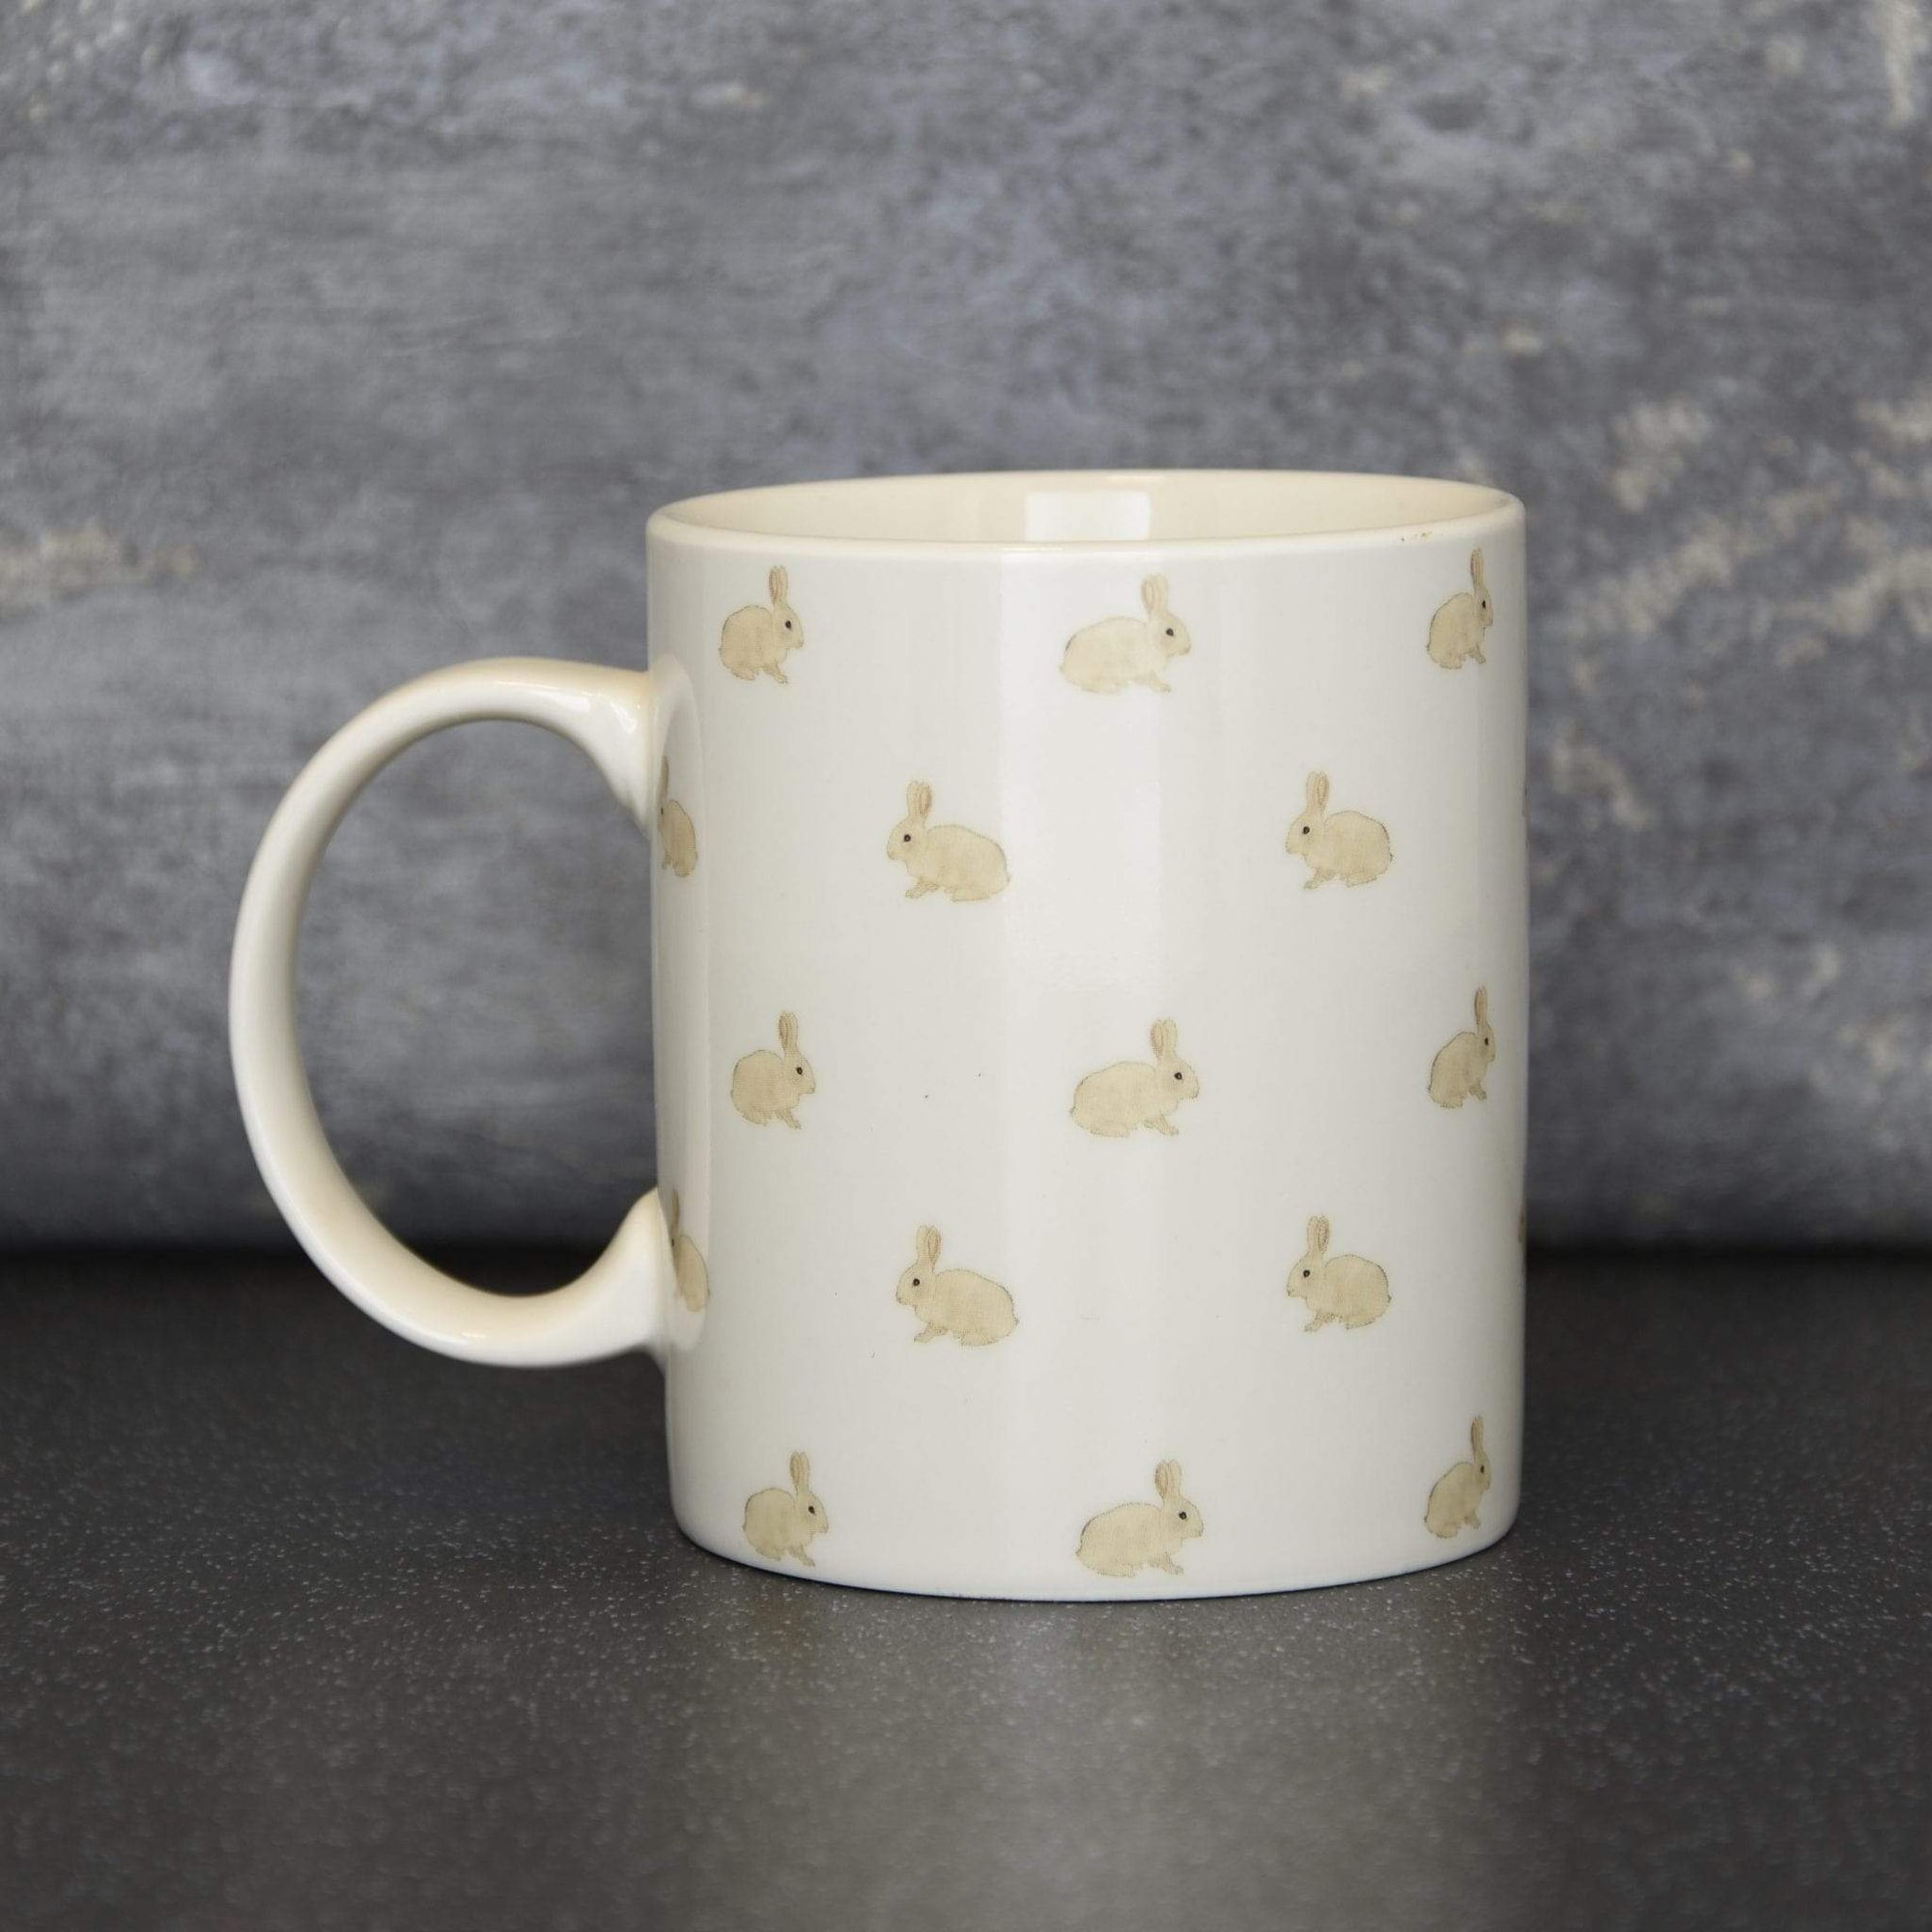 Candlelight Home Mugs Summer Meadows Rabbit Print Mug Cream 9.7cm 6PK